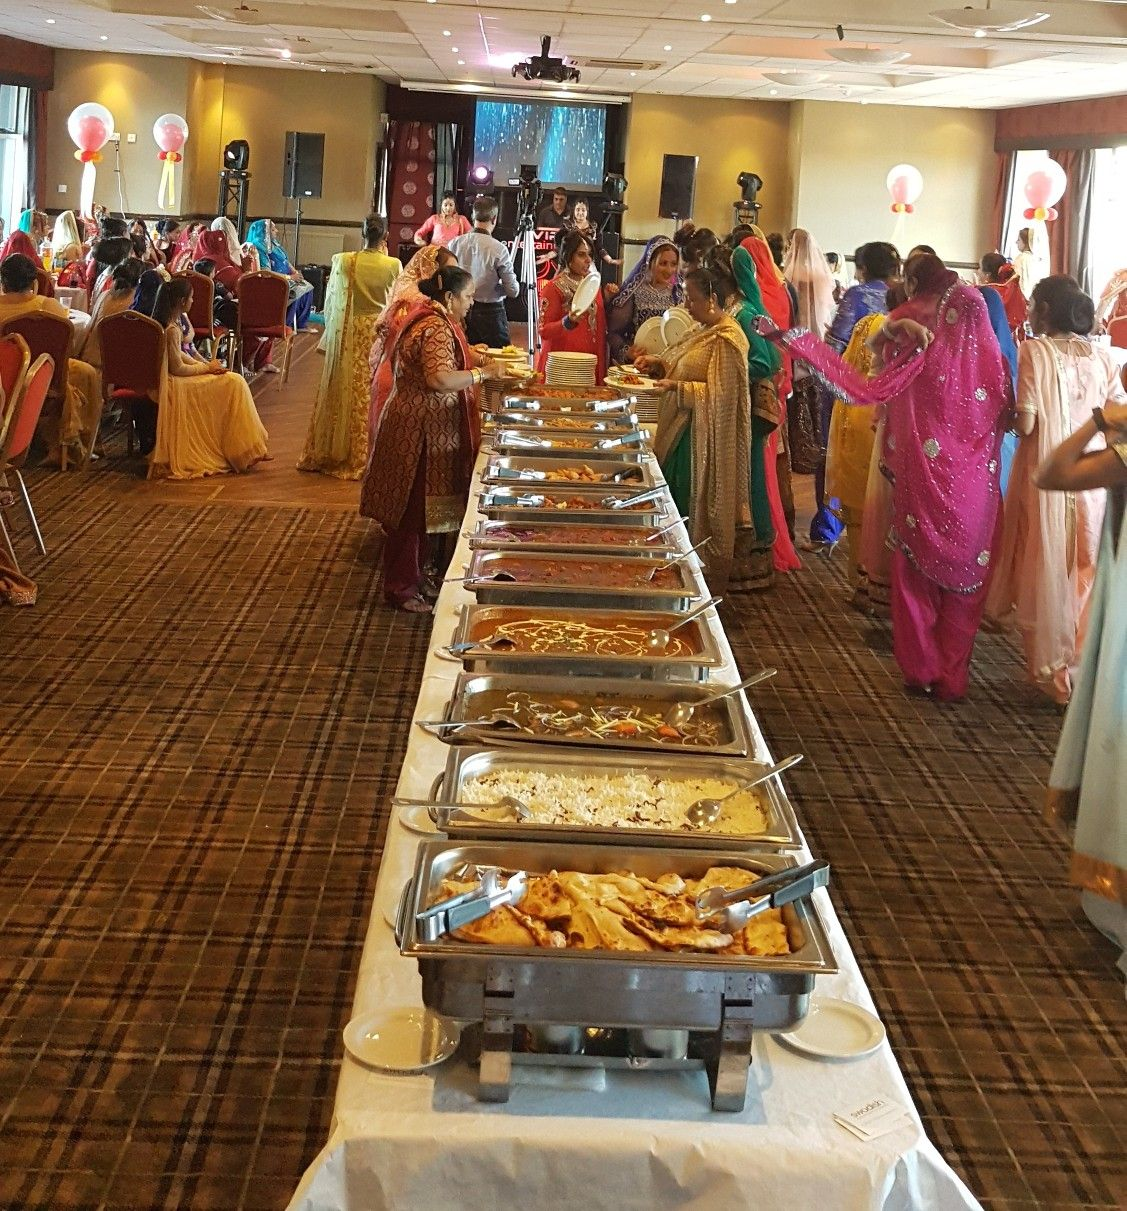 Asian Wedding Food Caterers: Indian Cuisine, Indian Food Recipes